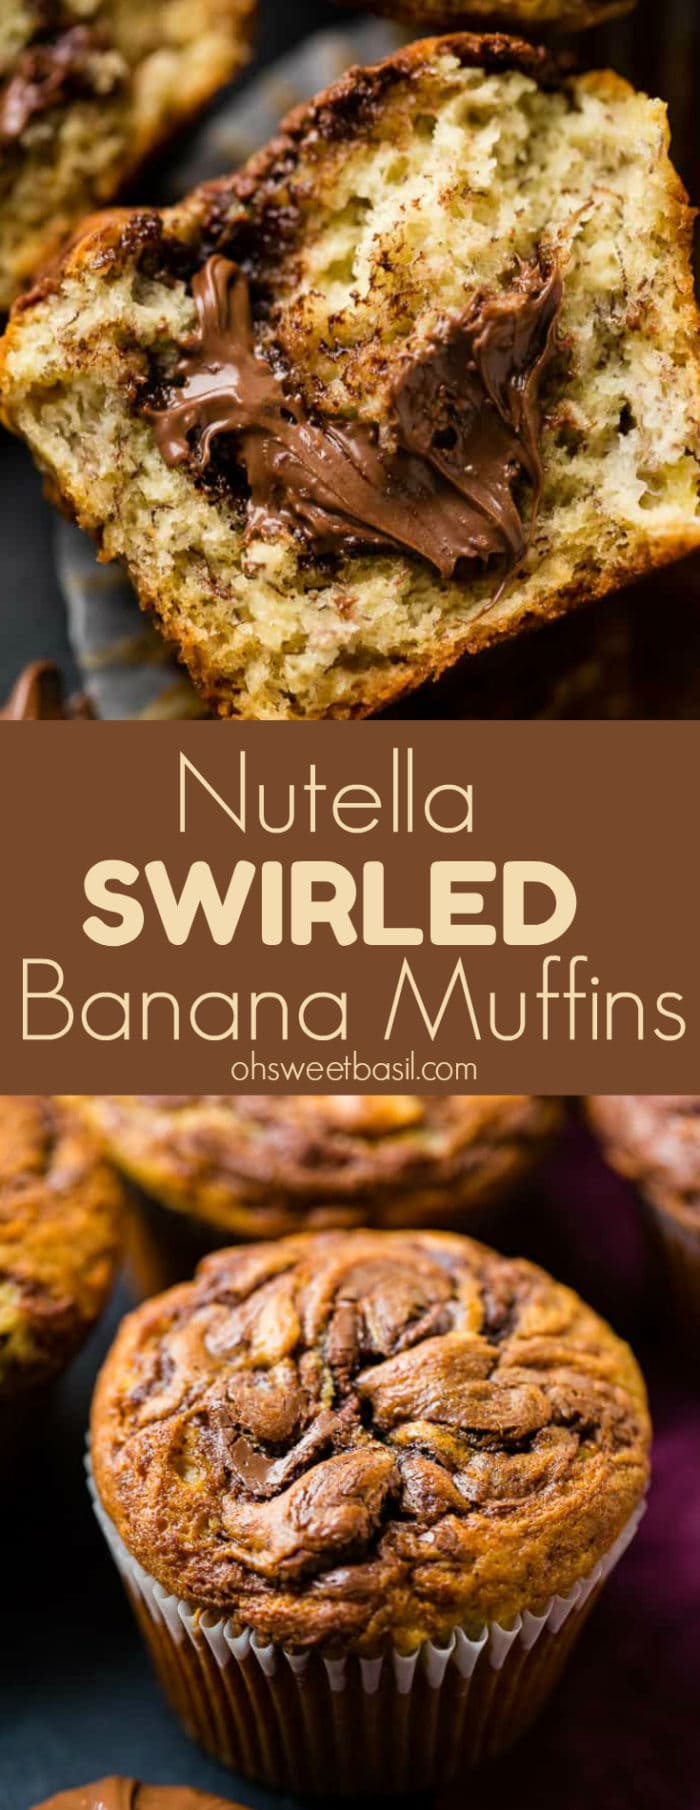 A photograph of a nutella swirled banana muffin with nutella oozing out and more muffins in the background